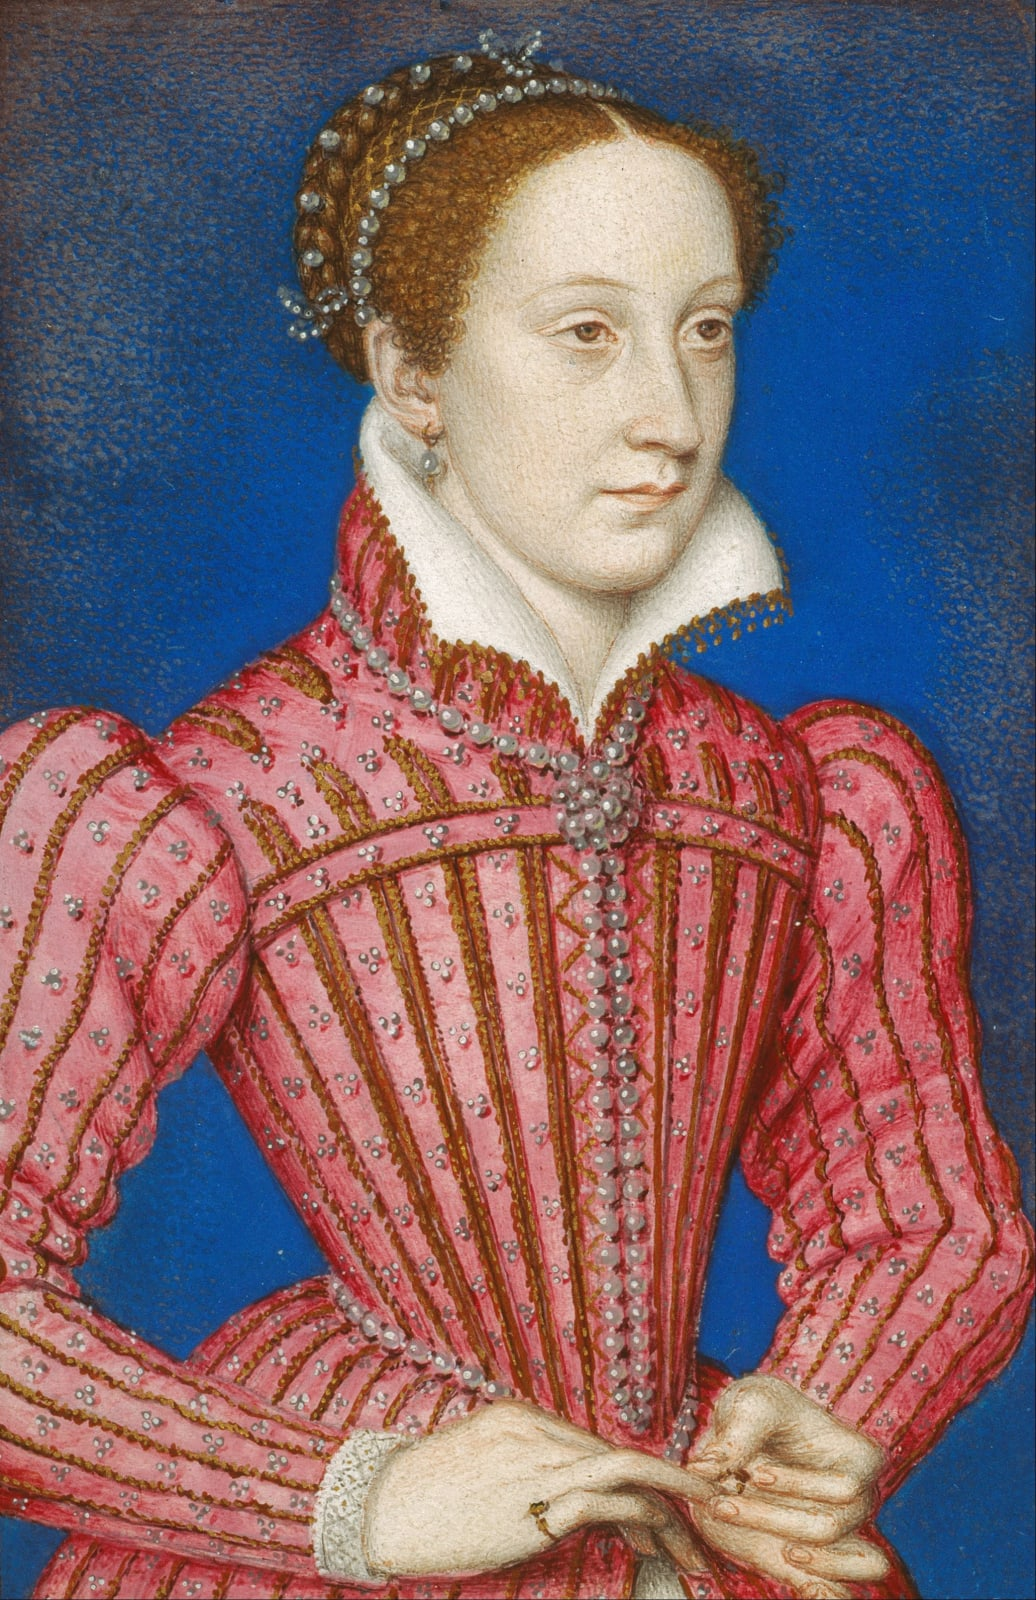 Mary, Queen of Scots (1542 – 1587)